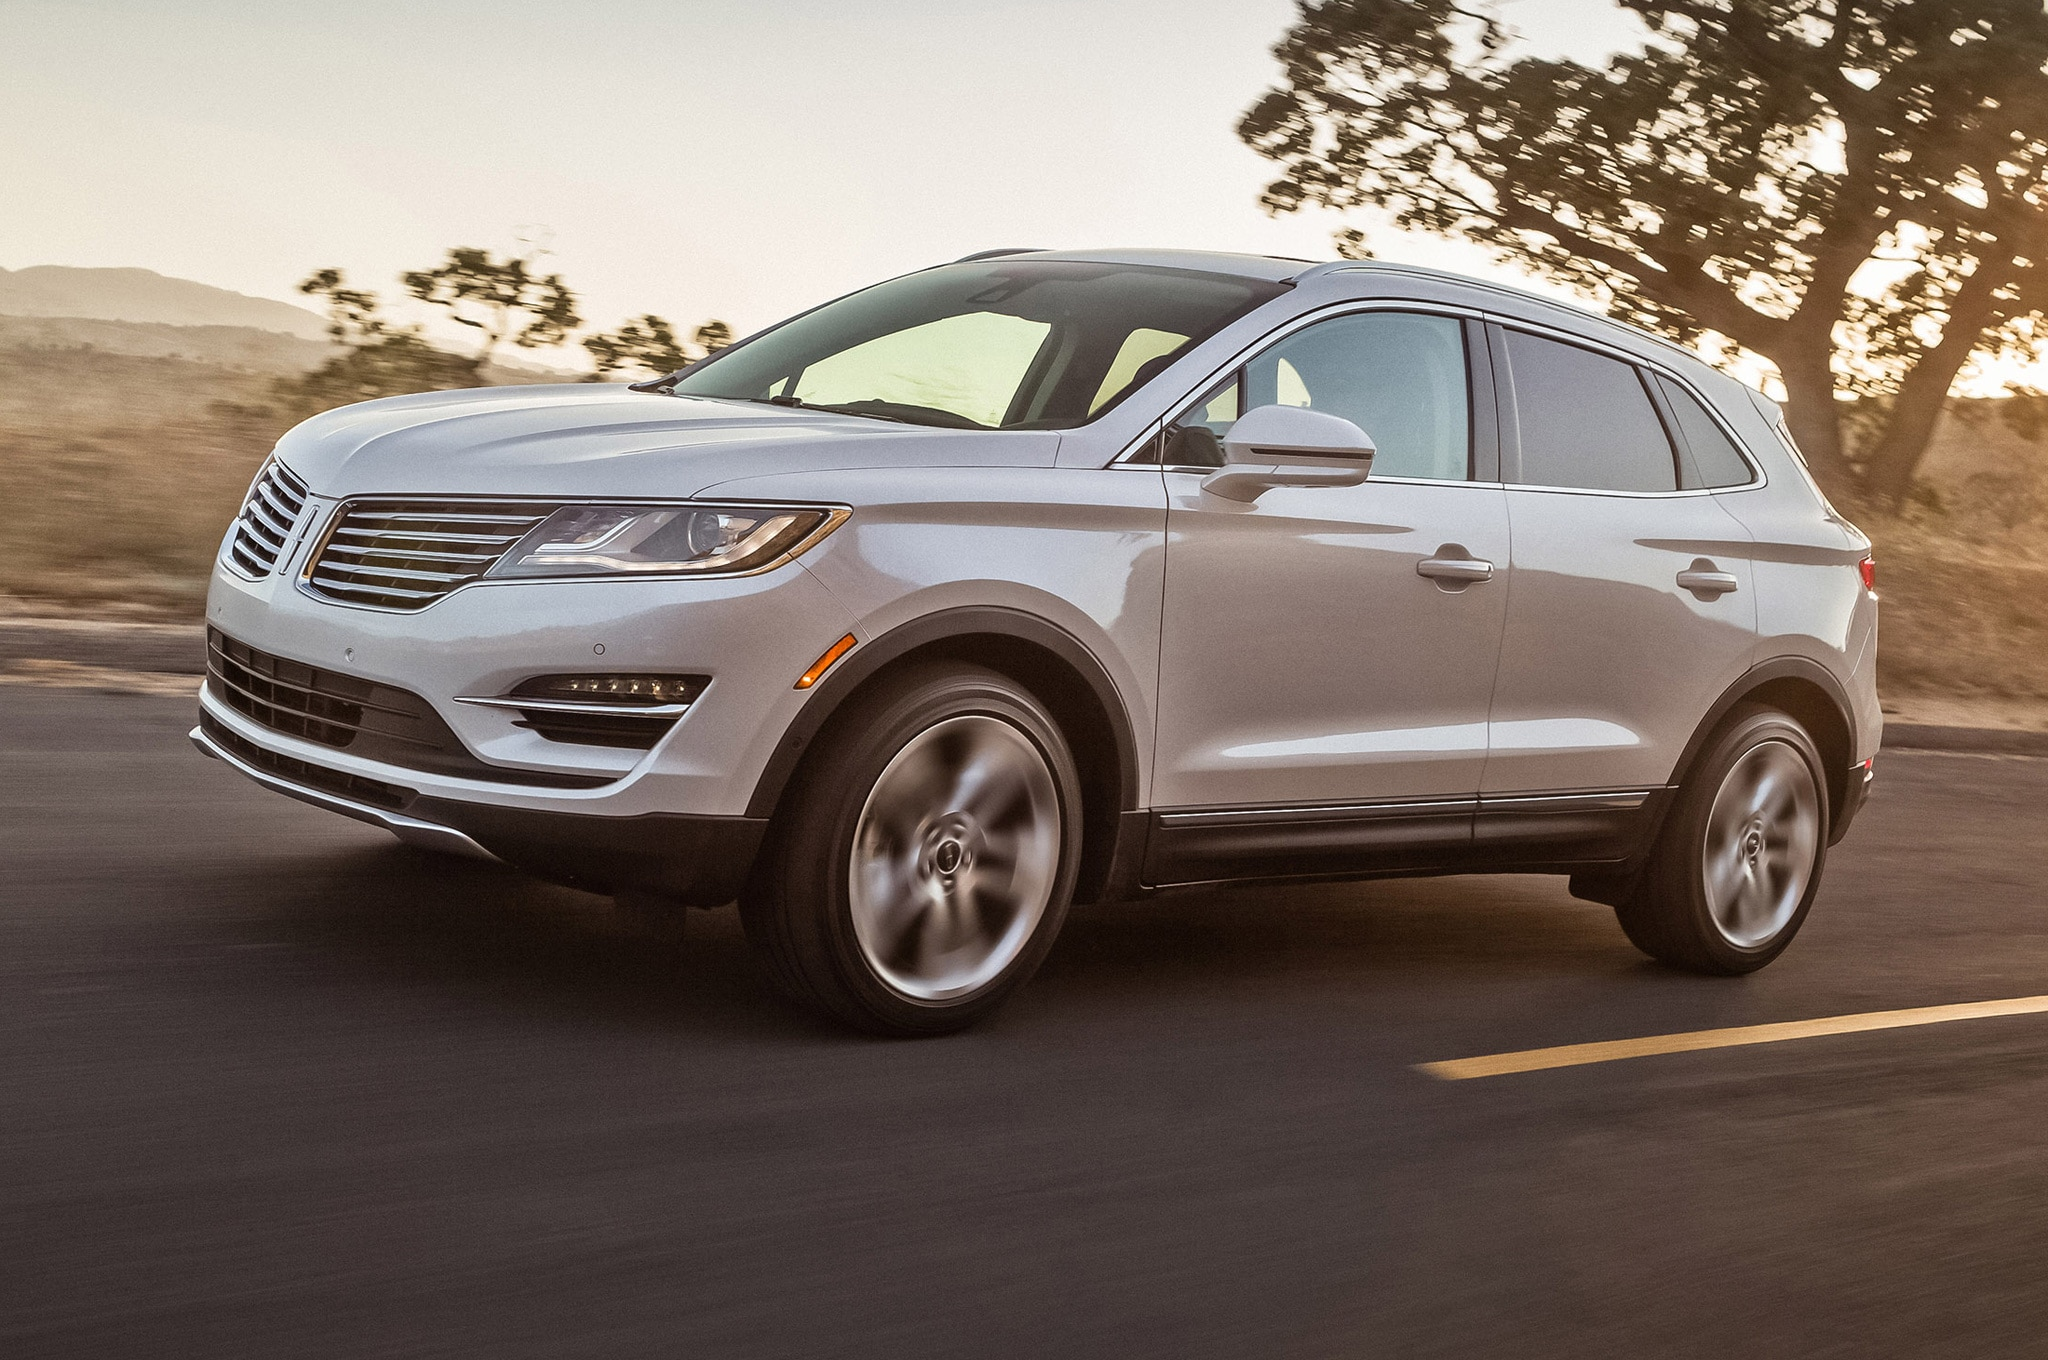 2015 Lincoln MKC Front Side Motion View With Sunlight1